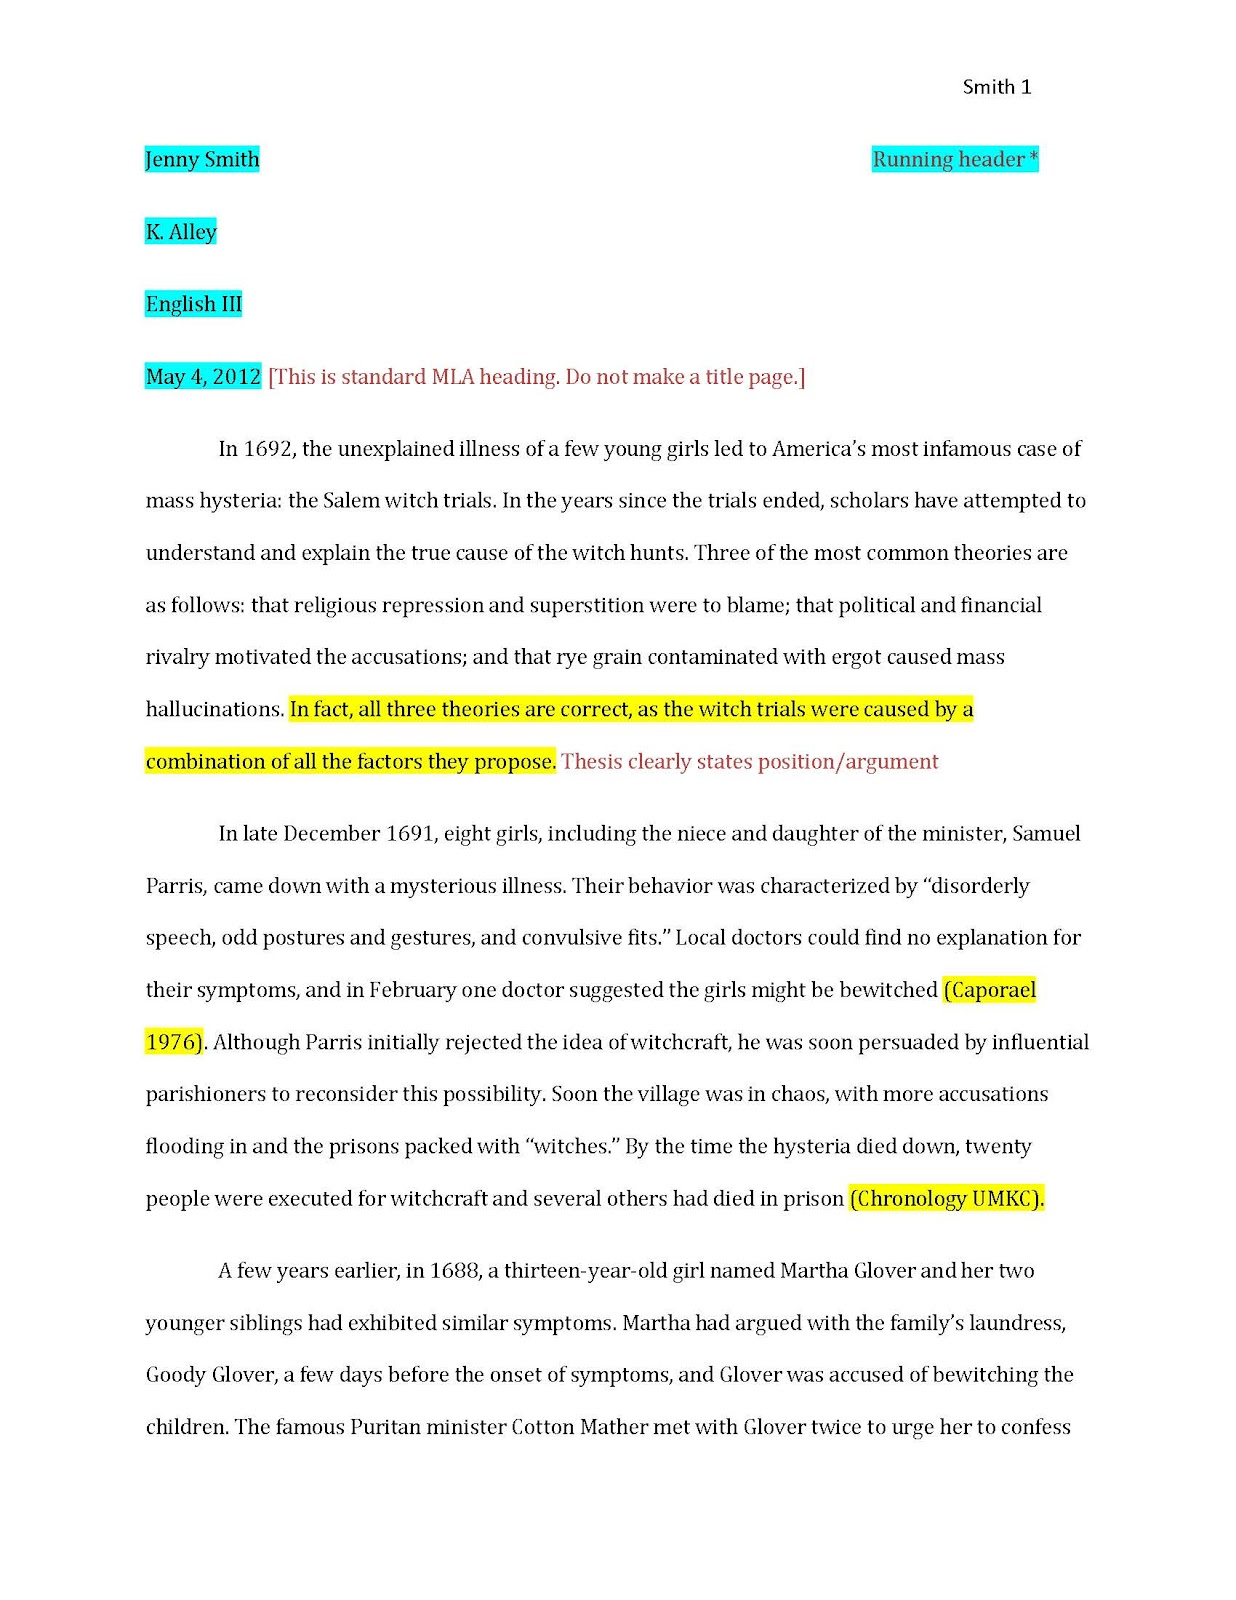 Cite essays how to cite a website in an essay apa citations in an cite essays how to cite a website in an essay apa citations in an citation in ccuart Gallery